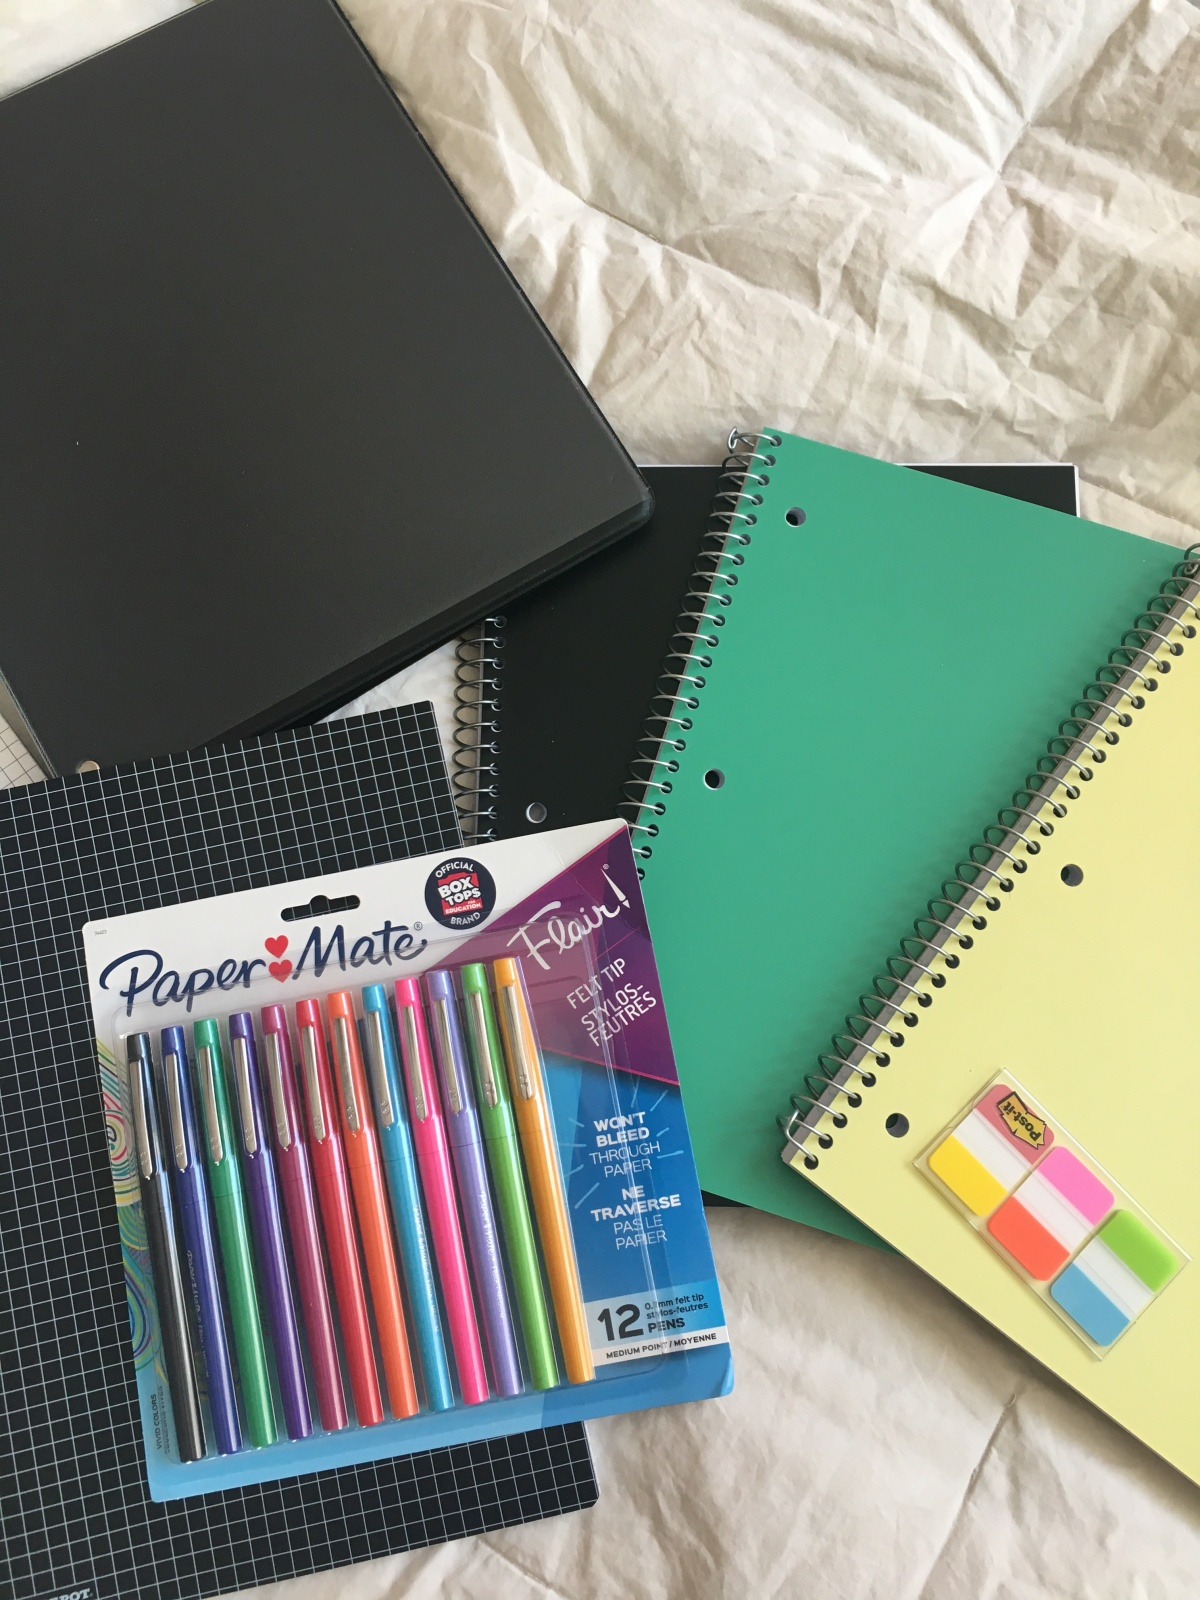 Back to school supplies haul! *groans then shrugs and smiles*